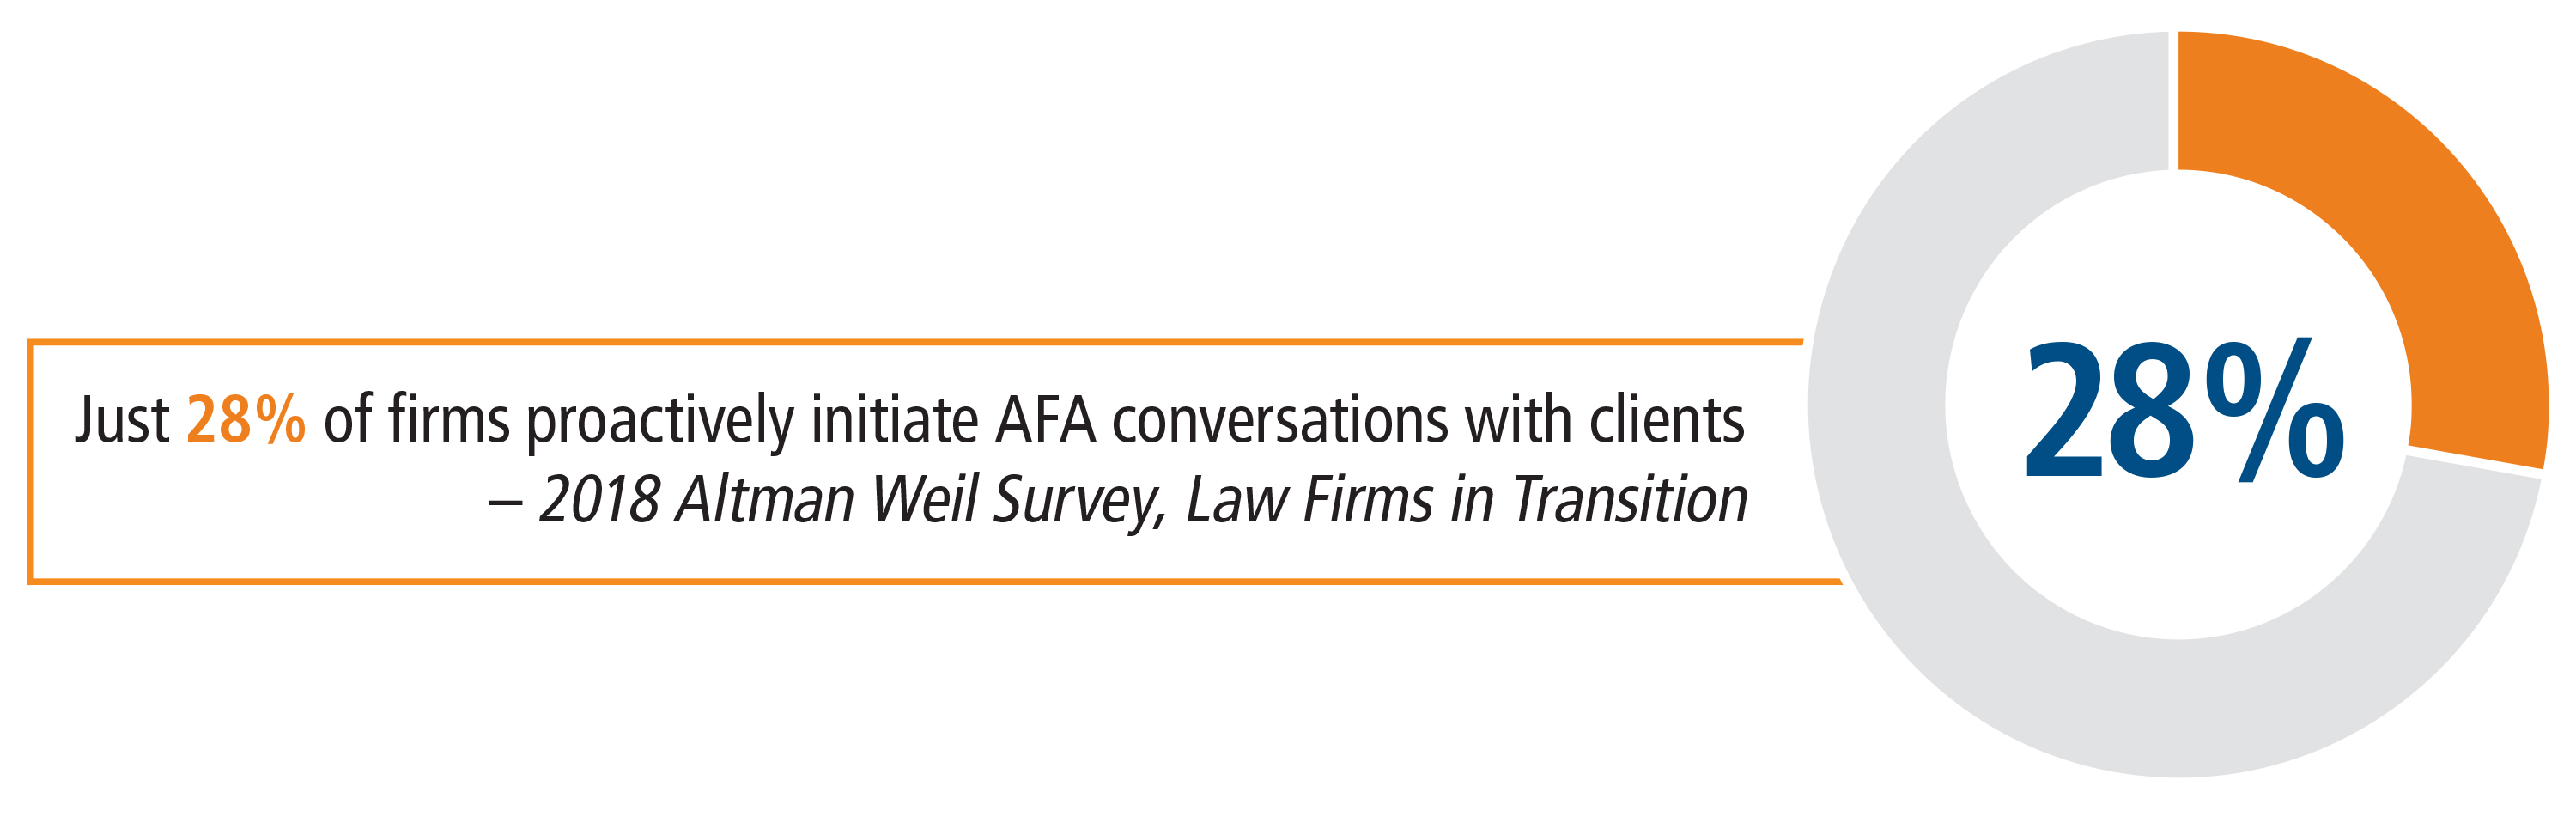 28 percent of firms proactively initiate AFA conversations with clients